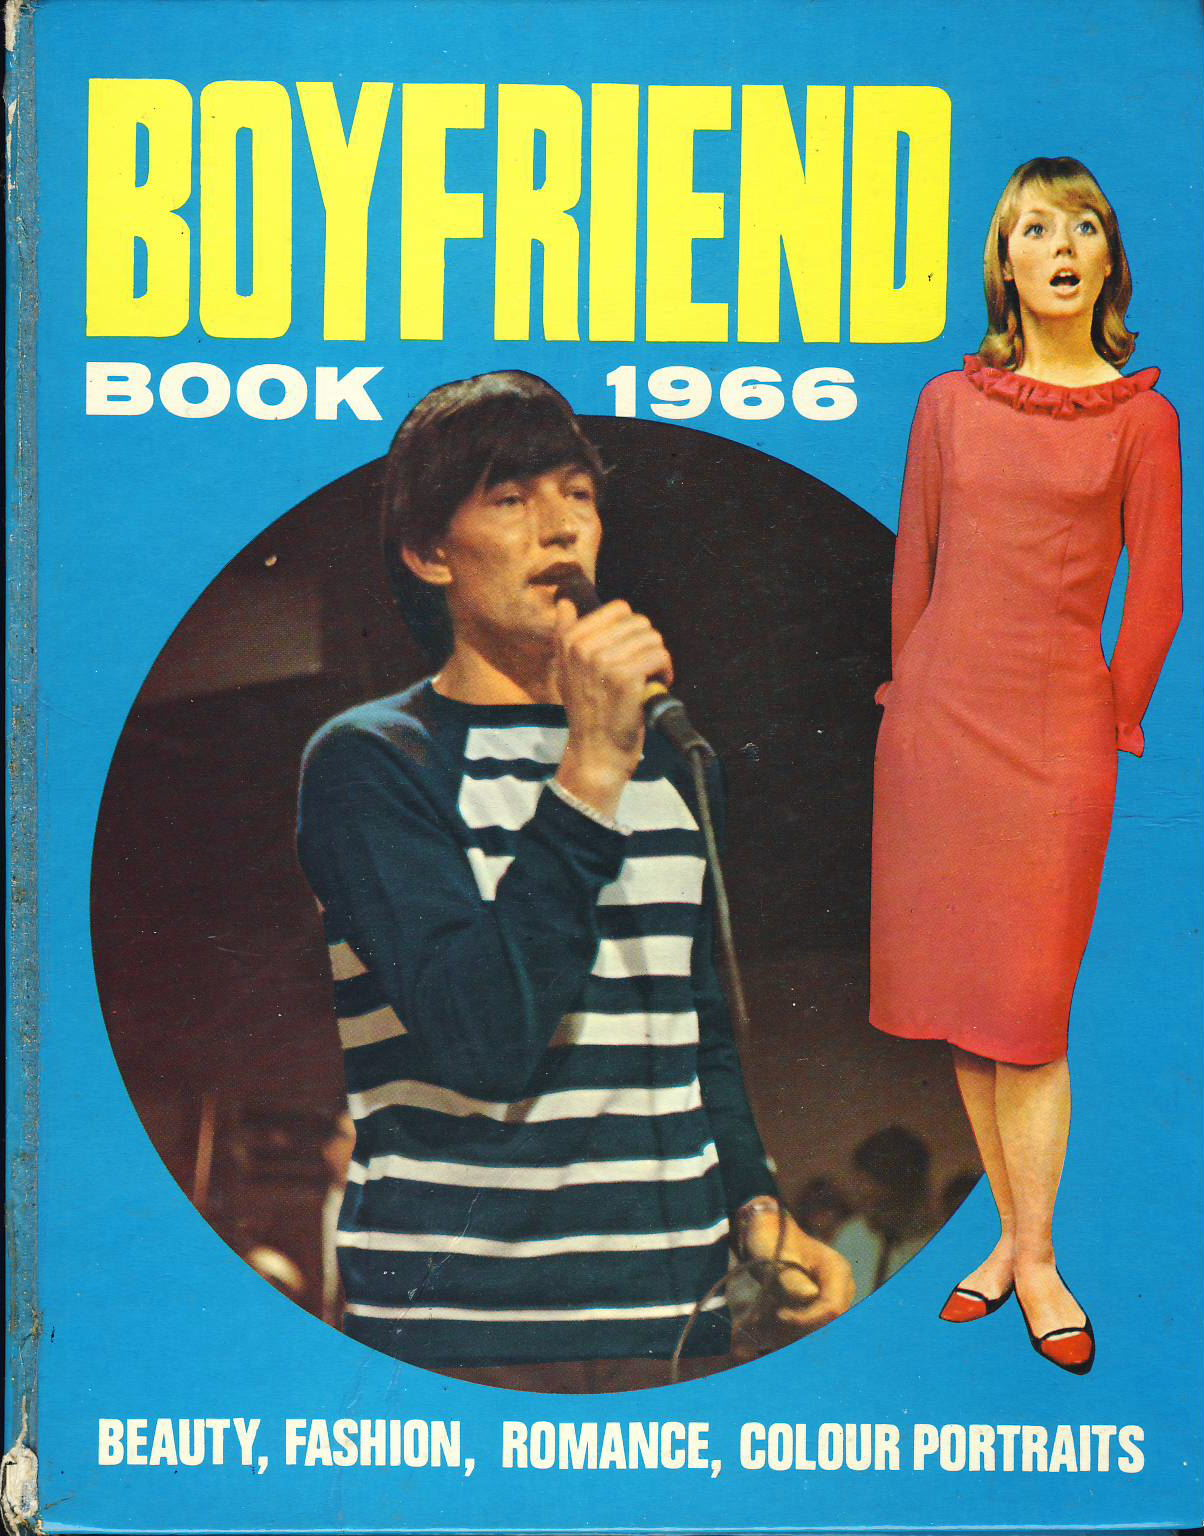 1966 BOYFRIEND BOOK hardback annual ref371 Pre-owned book in good clean condition for age. 158 pages - price unclipped. Please see large photo for more details.